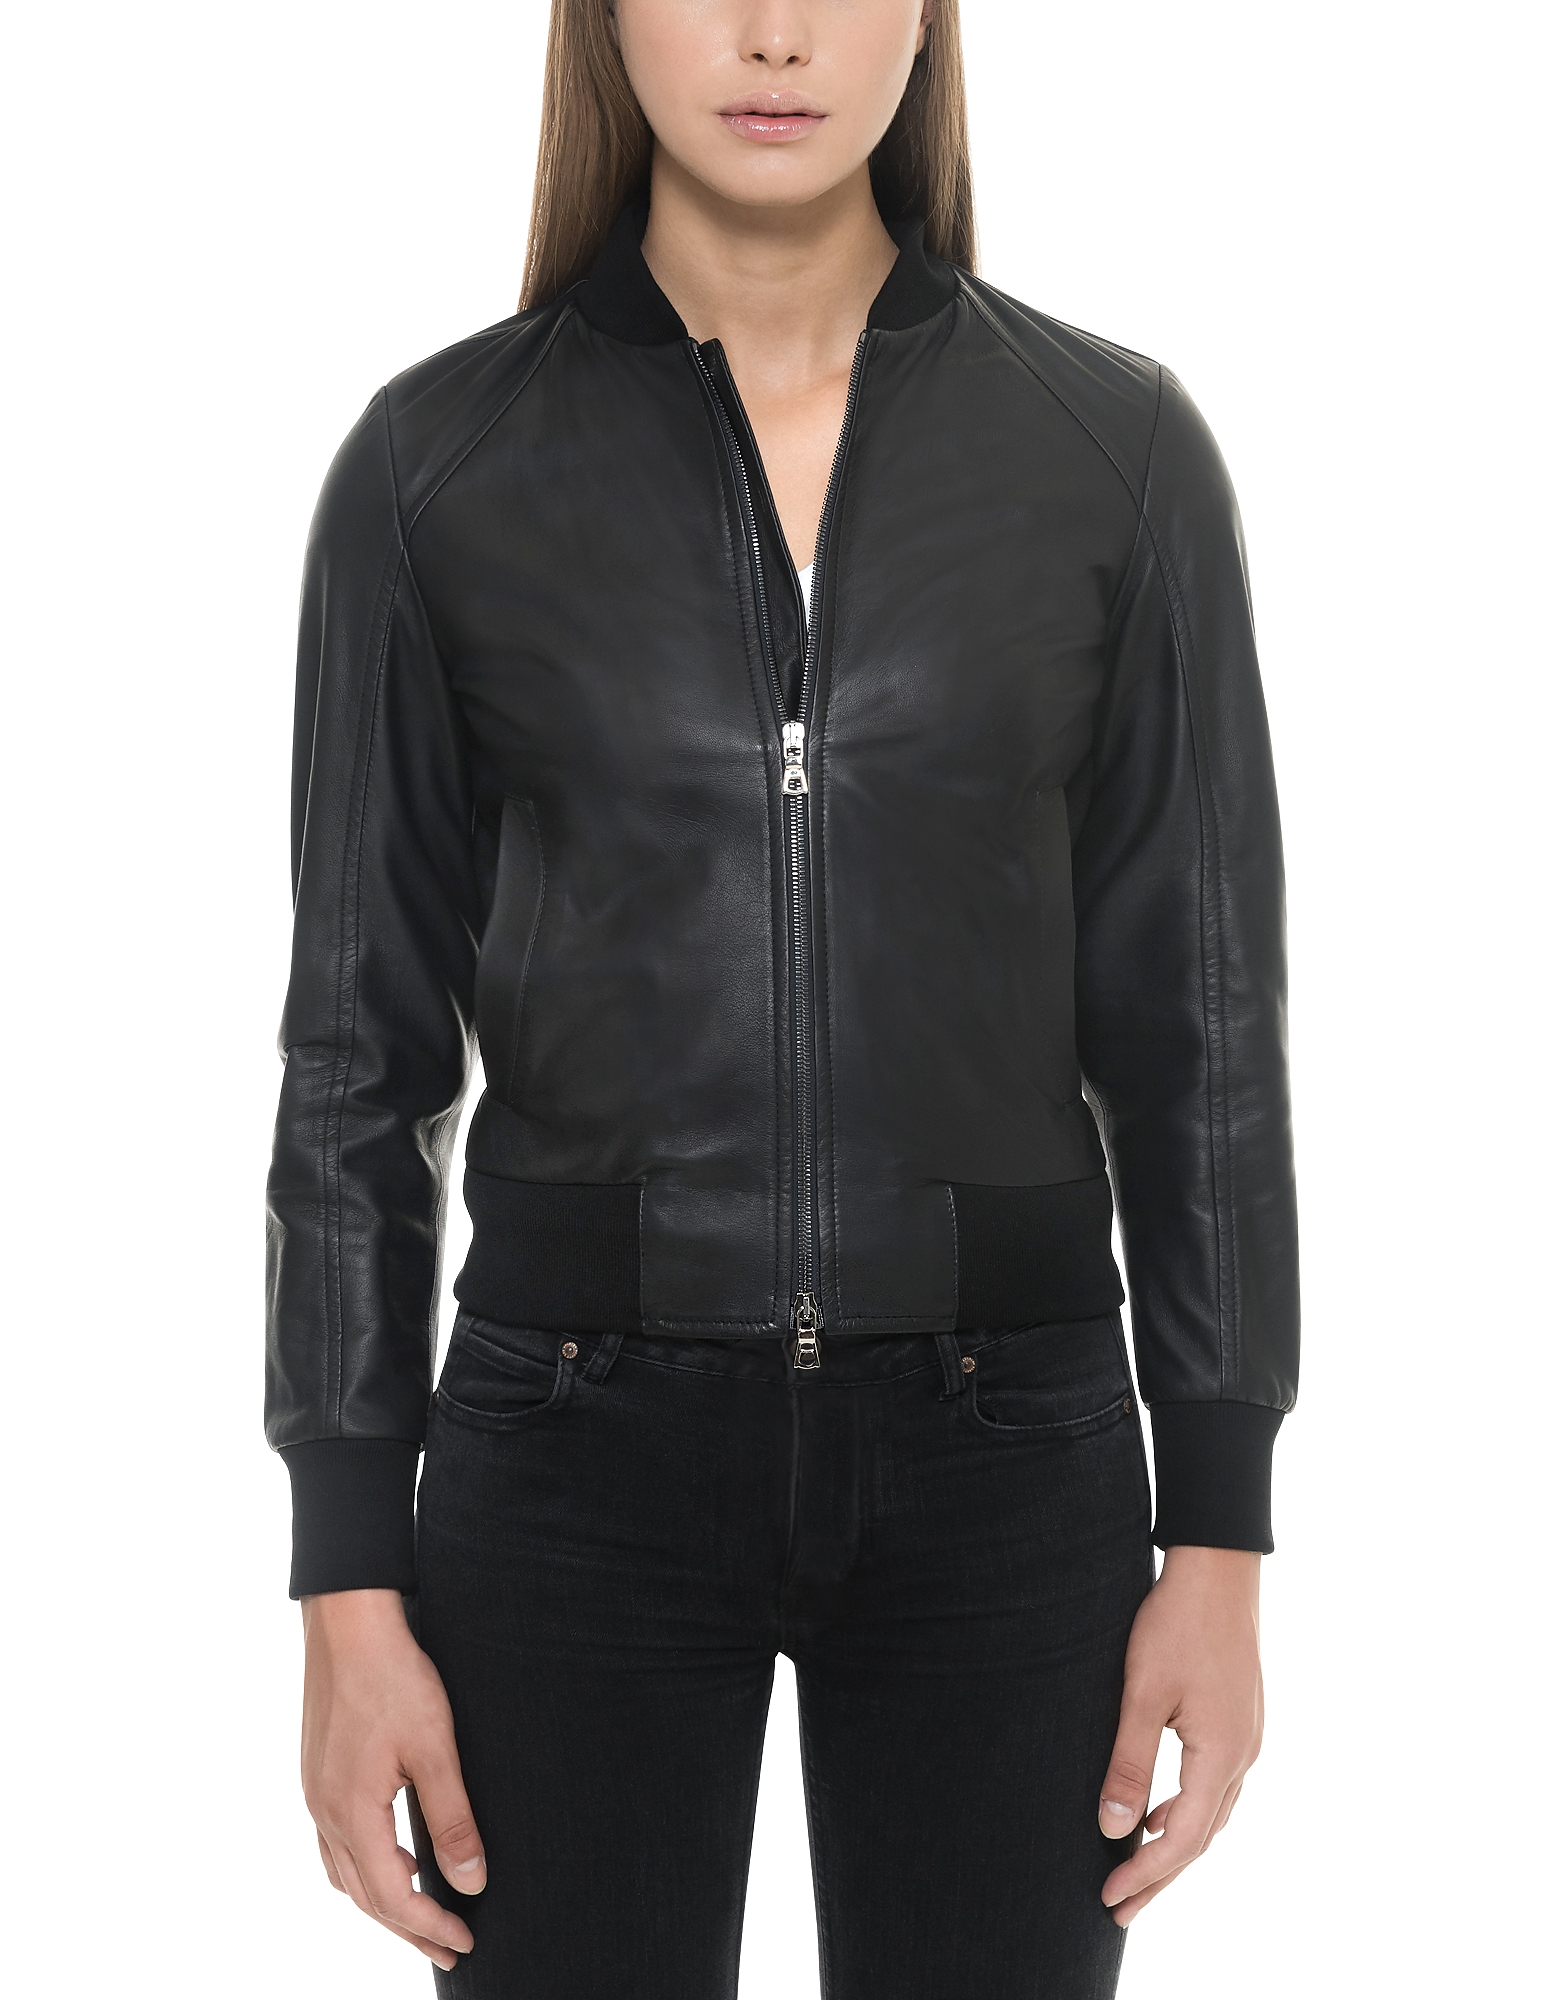 Black Leather Women's Bomber Jacket